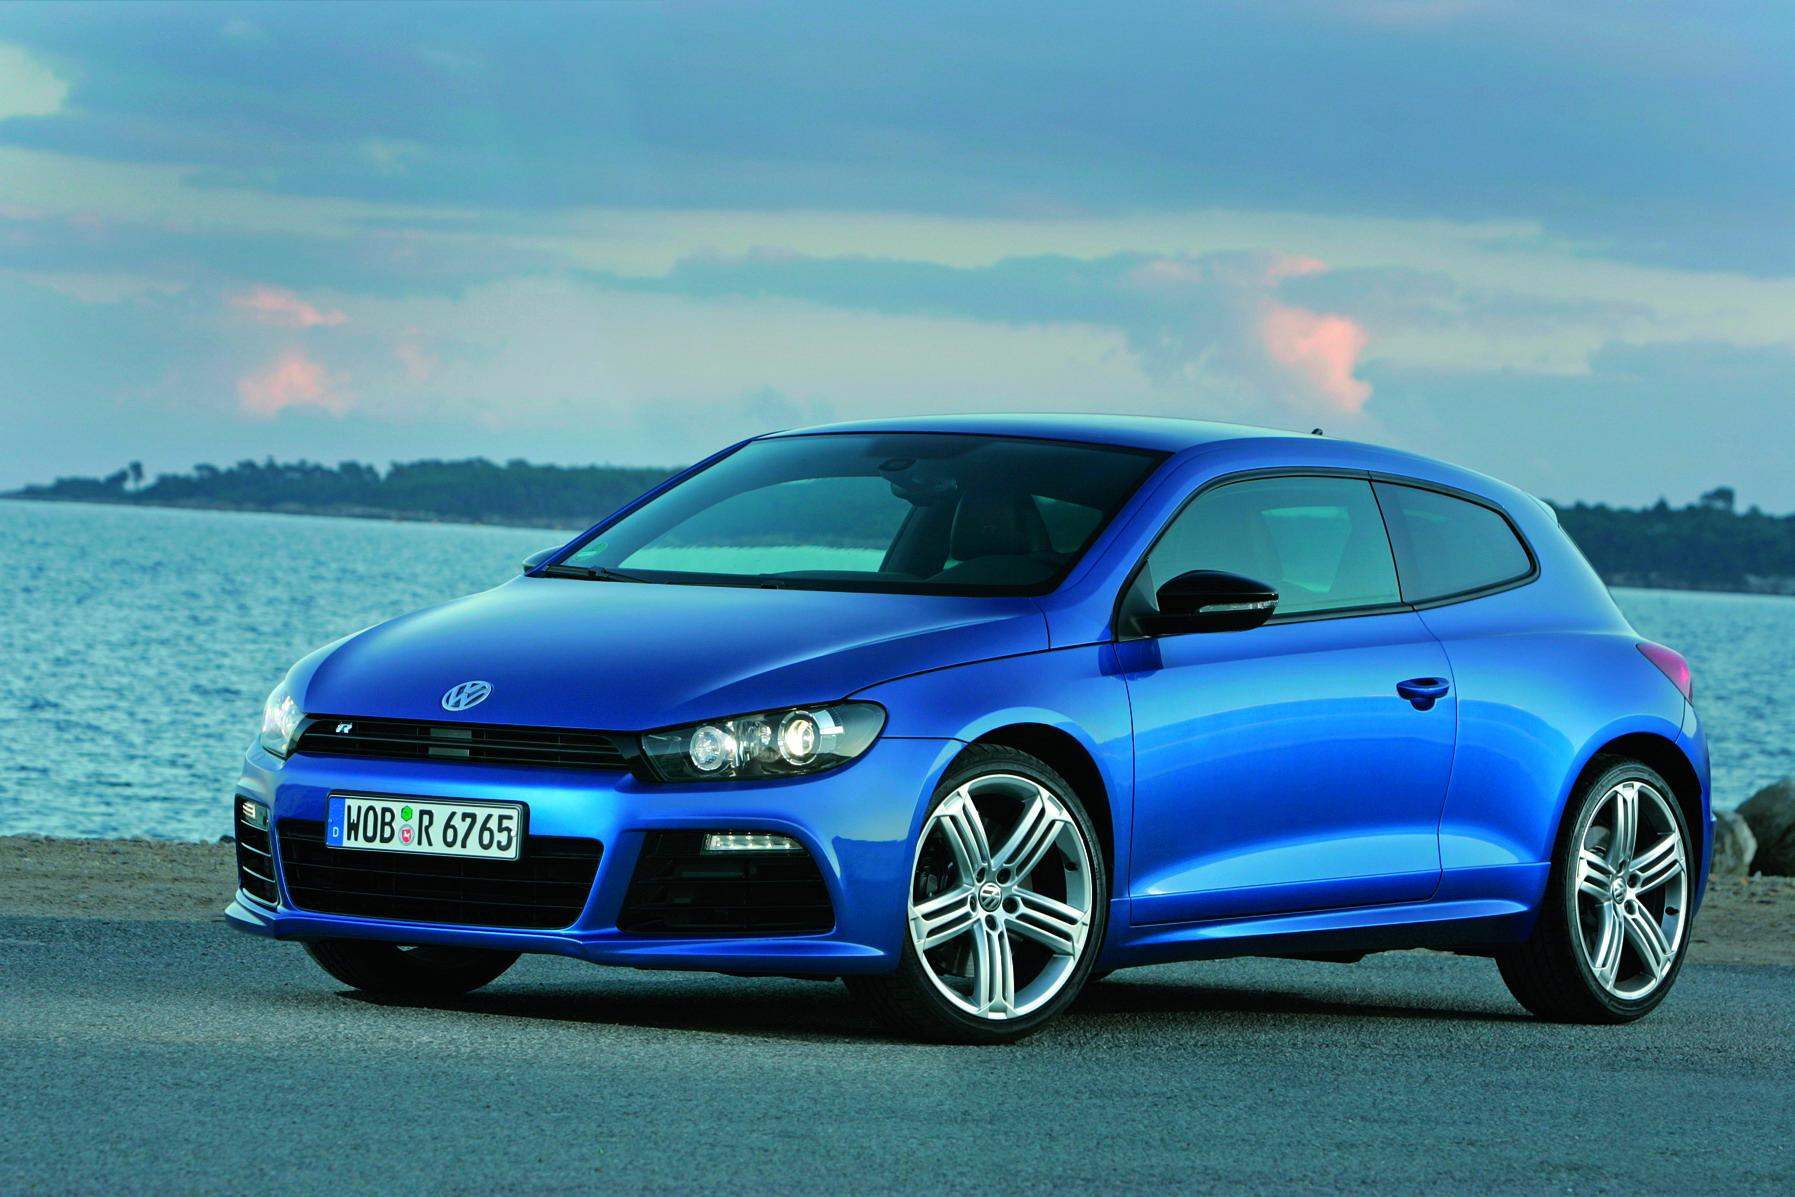 2010 Volkswagen Scirocco R Review   Top Speed. »